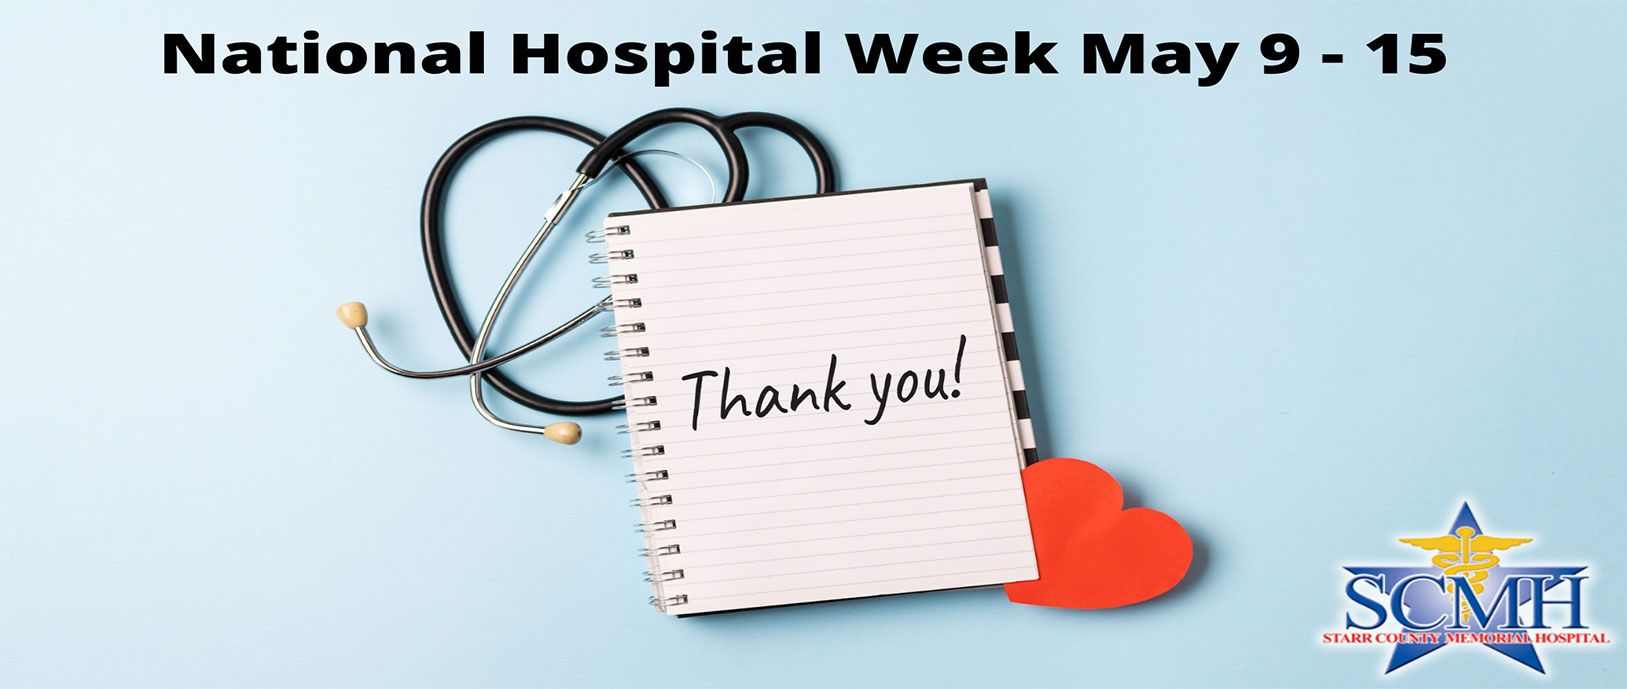 National Hospital Week May 9 - 15